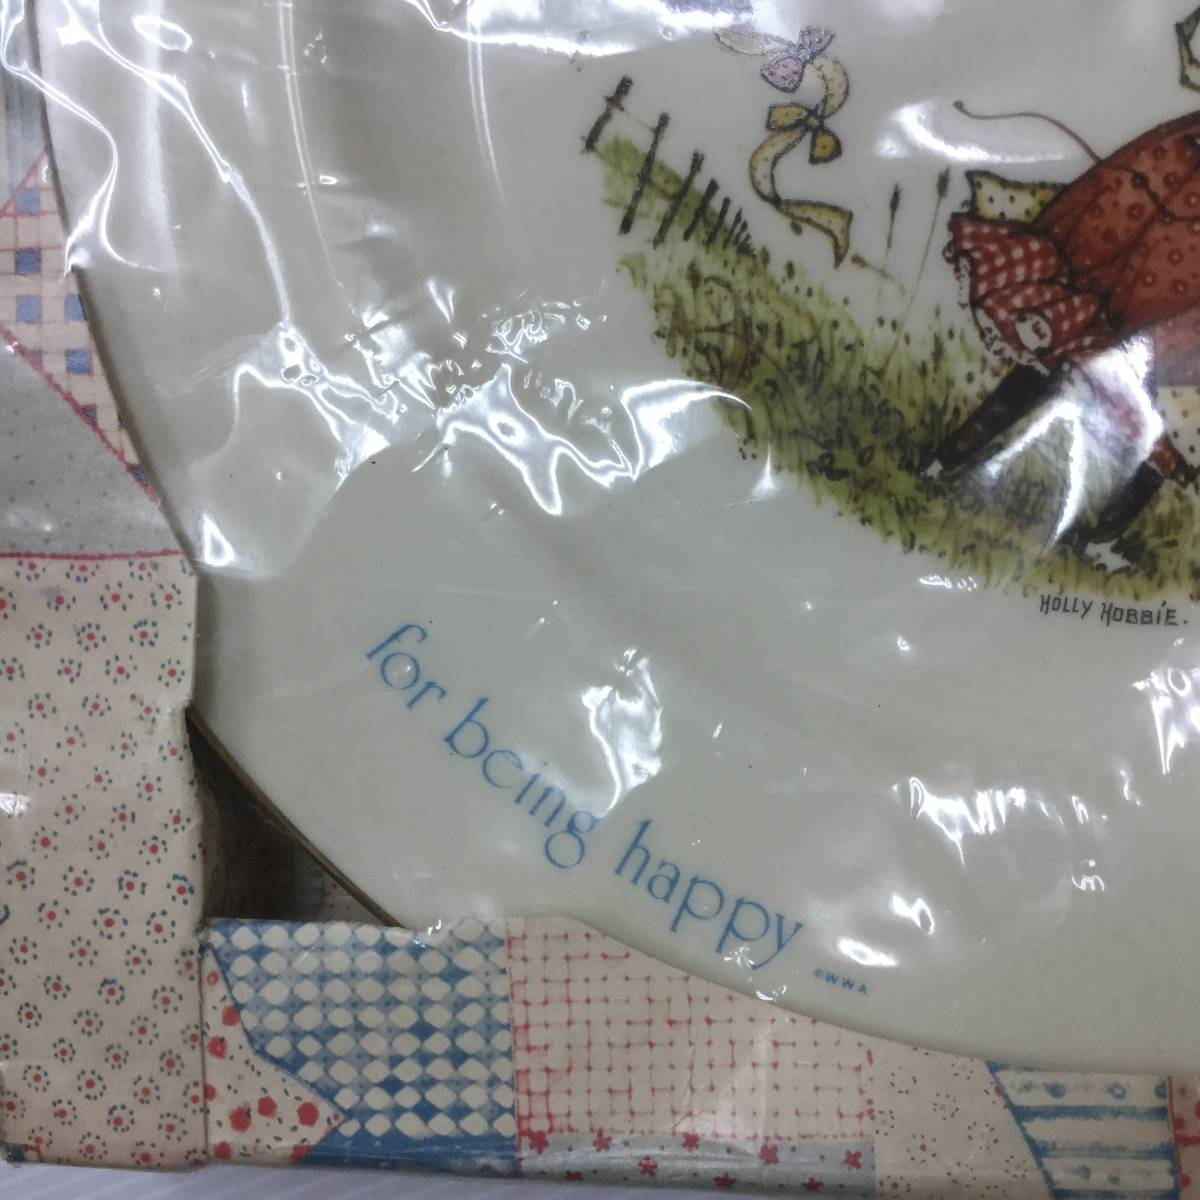 ■ARTBOOK_OUTLET■ 62-049 ★ 未開封 ホーリーホビー ヴィンテージ コレクター プレート 1974年 HOLLY HOBBIE VINTAGE COLLECTOR PLATE 3_画像5